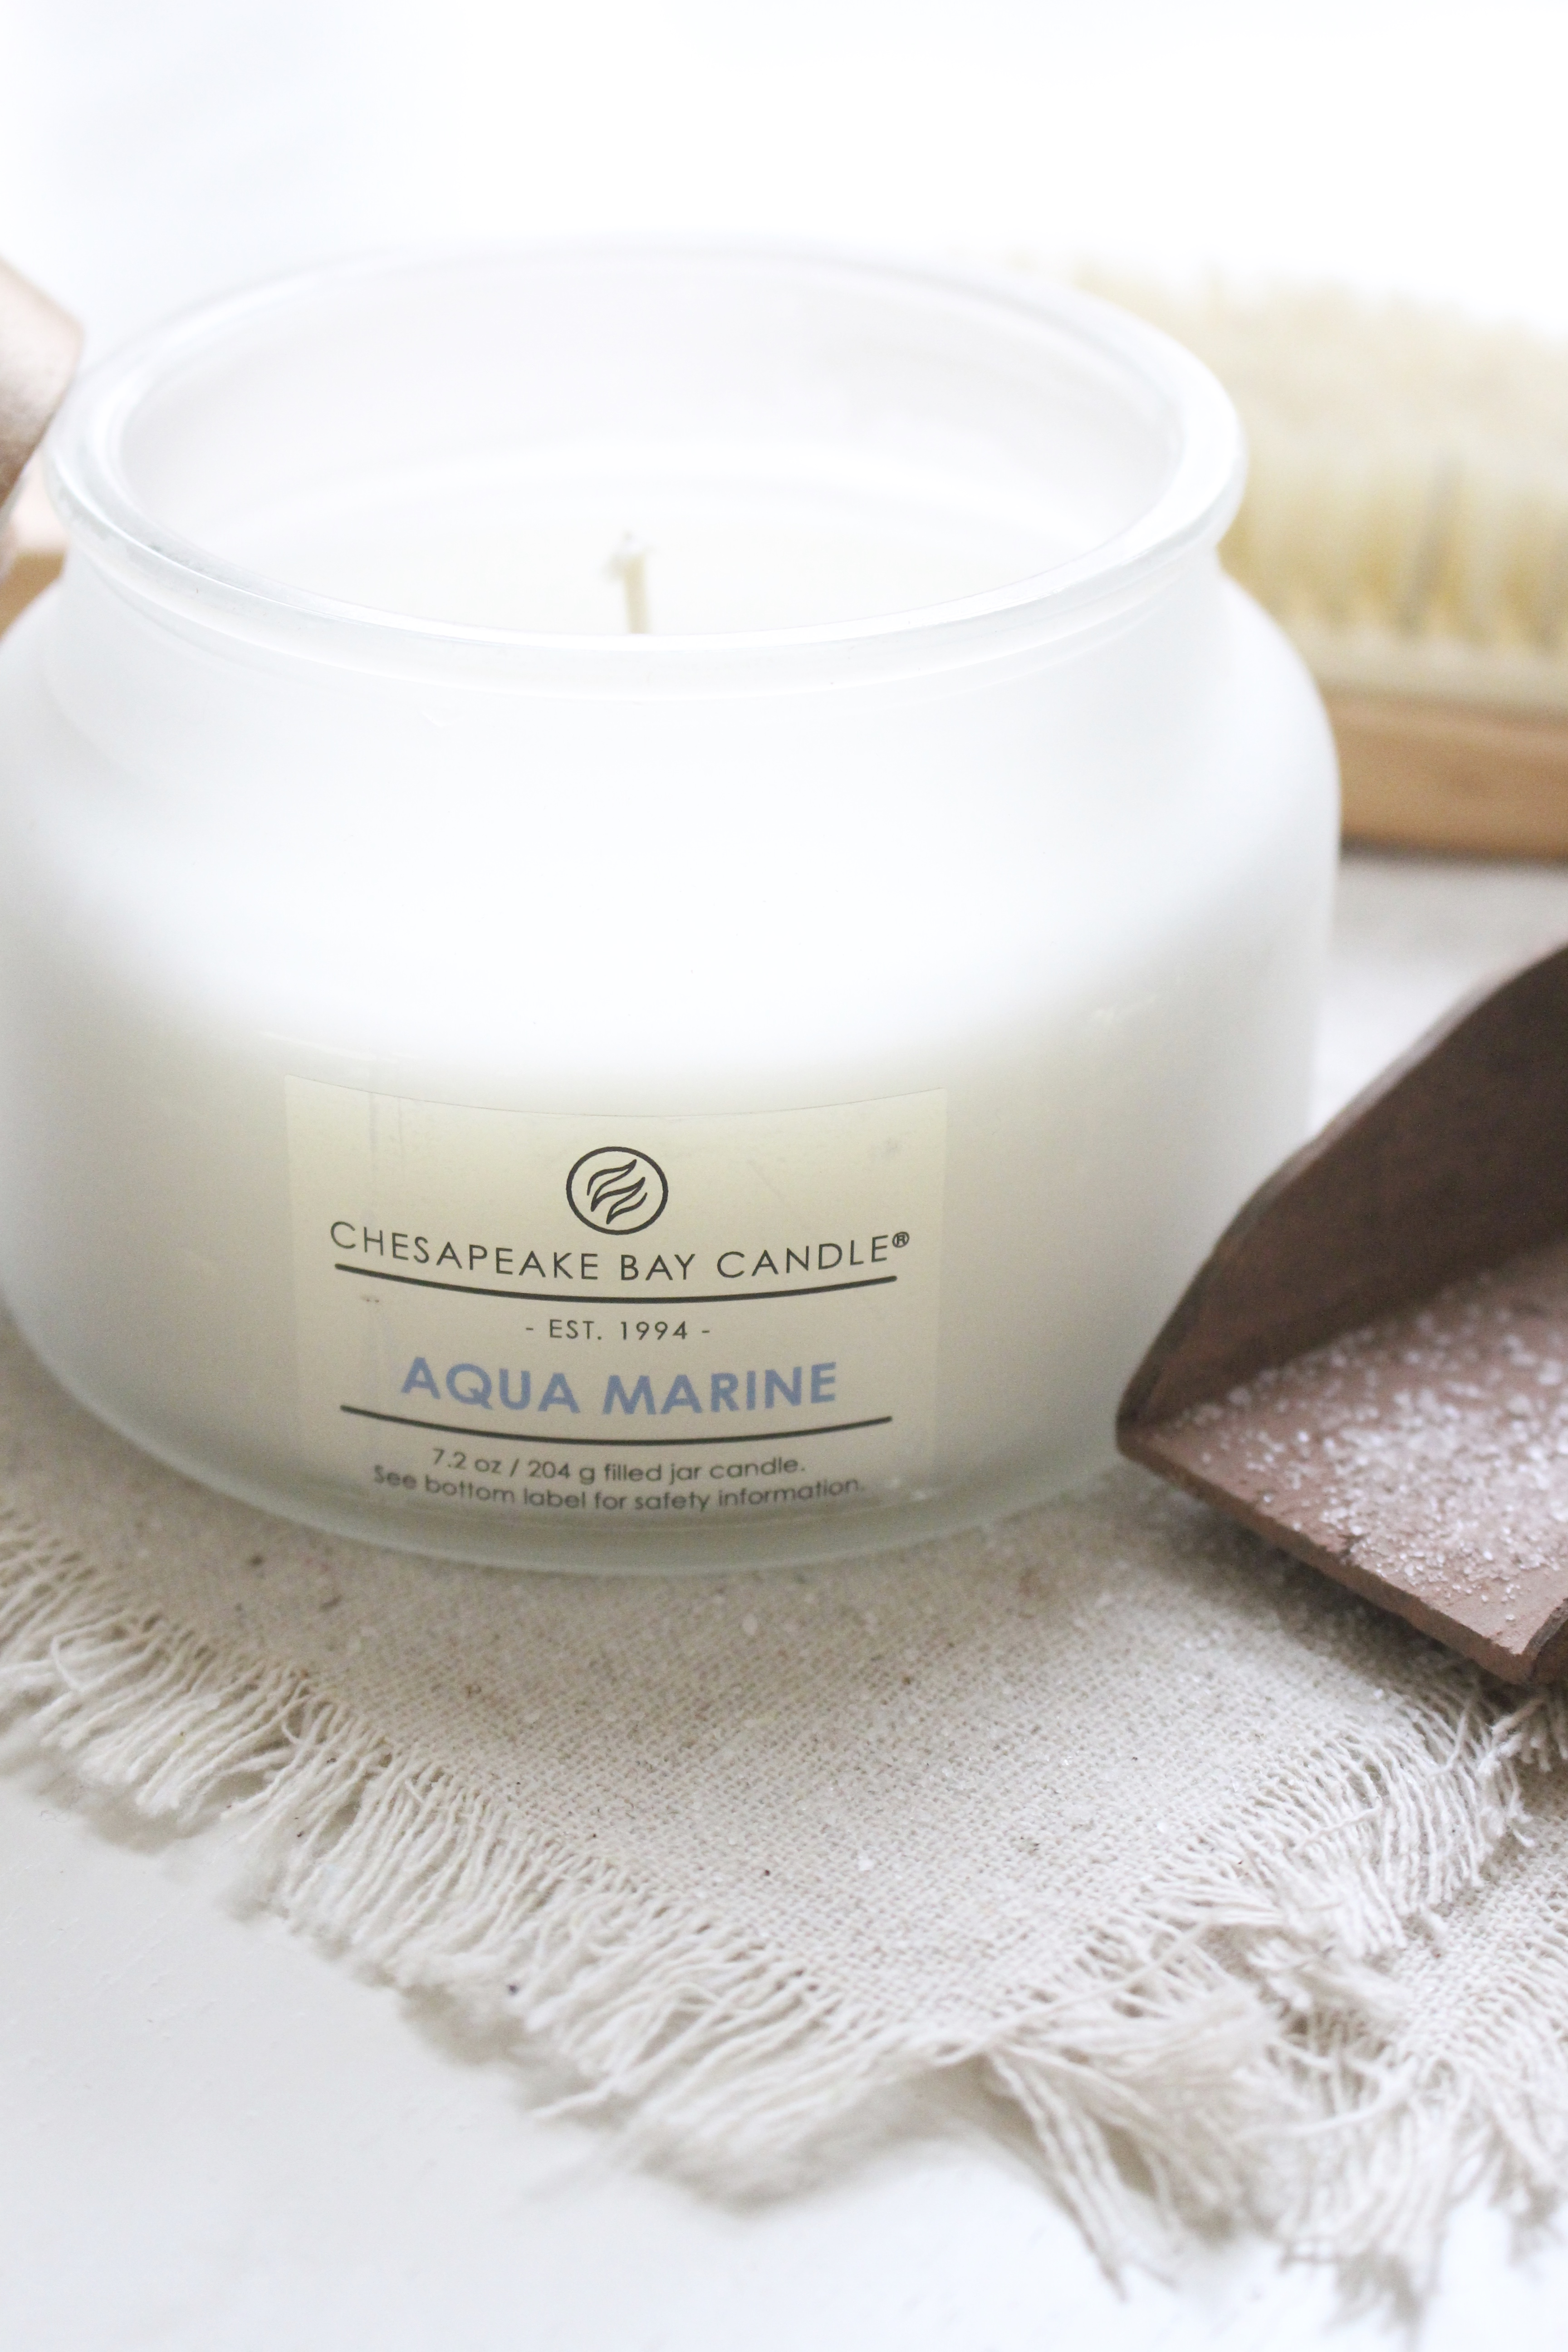 Chesapeake Bay Candle, candles, decor, decorating, using candles in your home, botanical fragrances, soy candles, essential oils